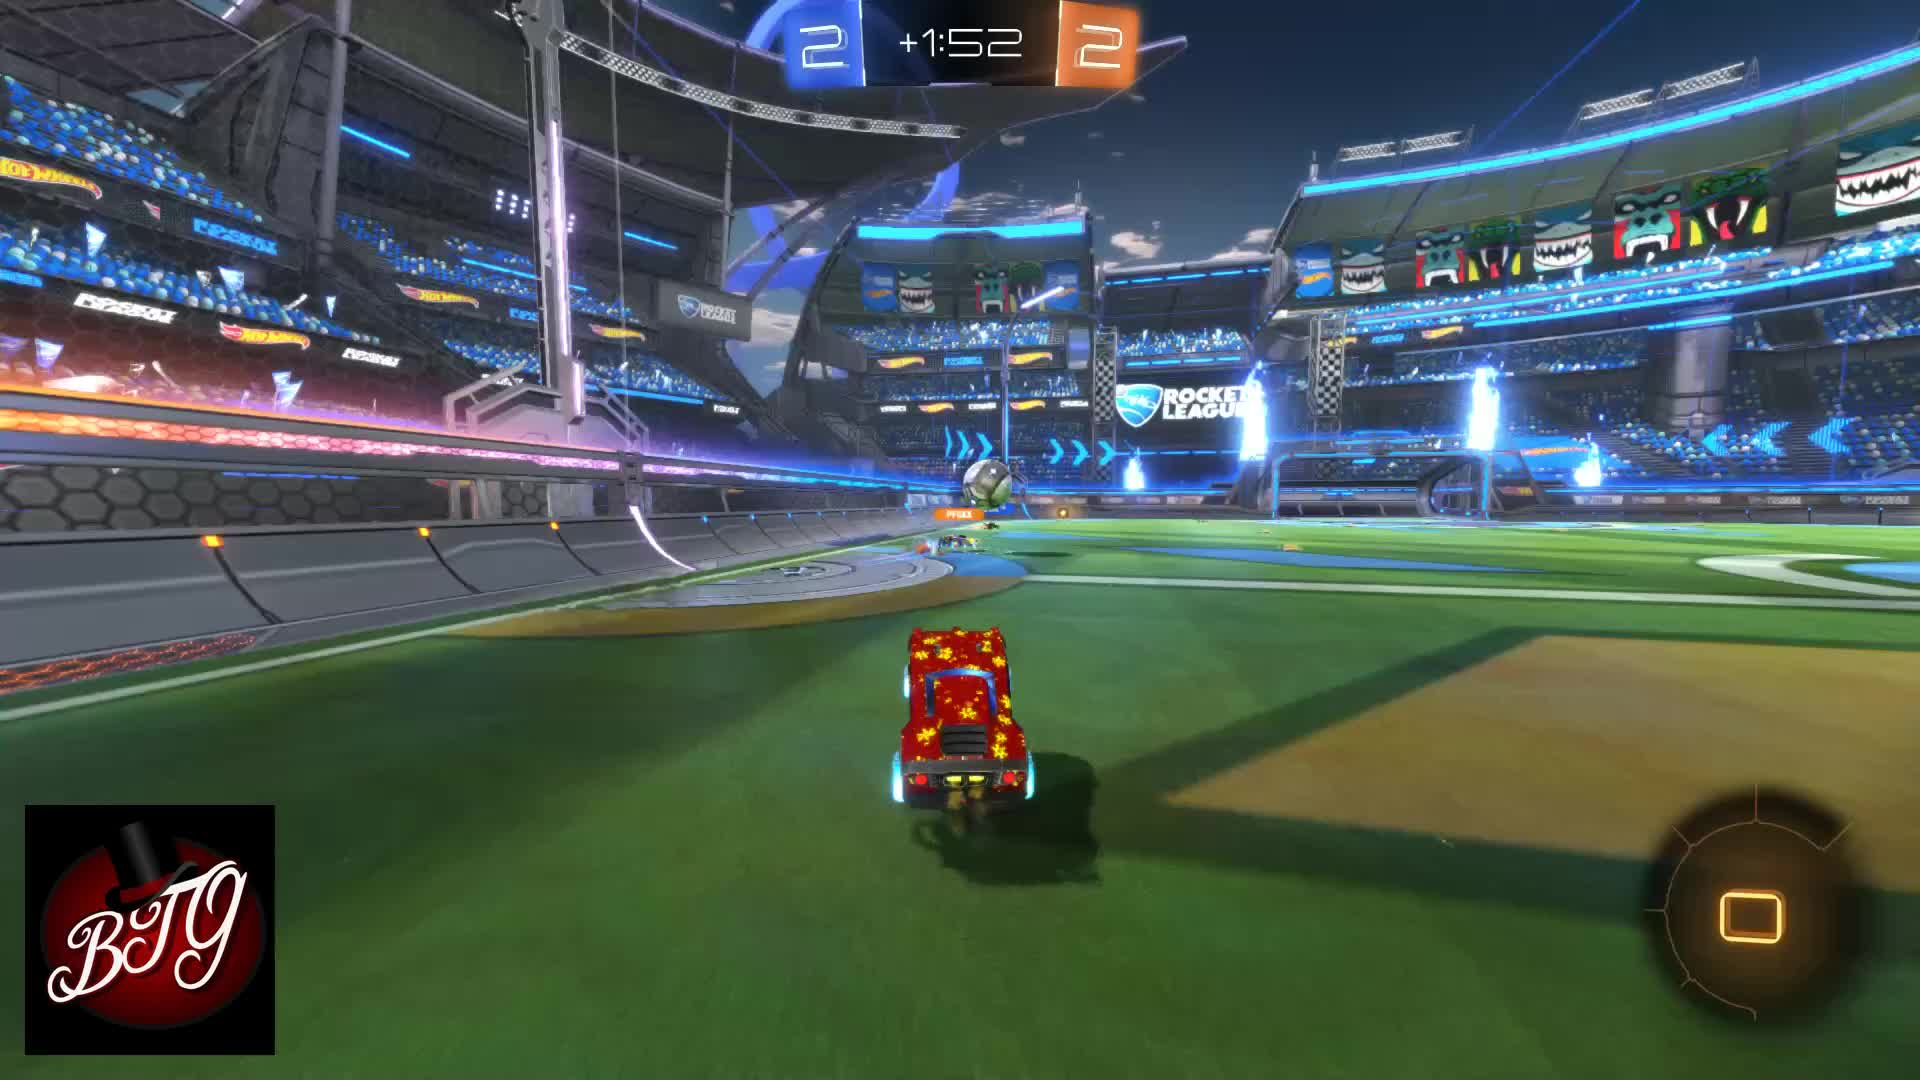 CarKneeJR, Gif Your Game, GifYourGame, Goal, Rocket League, RocketLeague, Goal 5: CarKneeJR GIFs